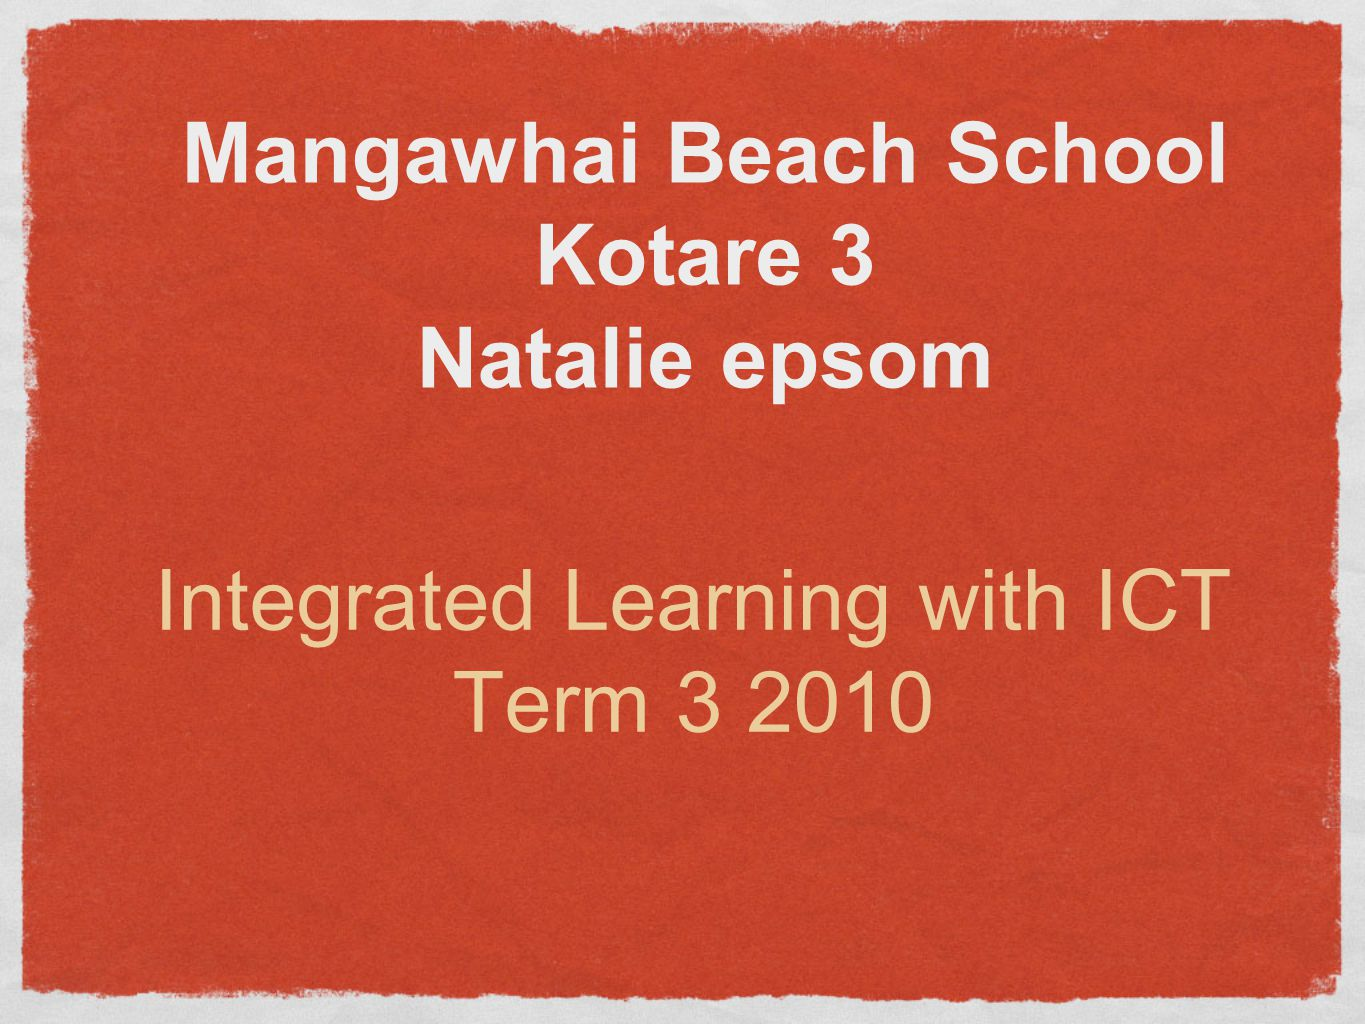 Mangawhai Beach School Kotare 3 Natalie epsom Integrated Learning with ICT Term 3 2010